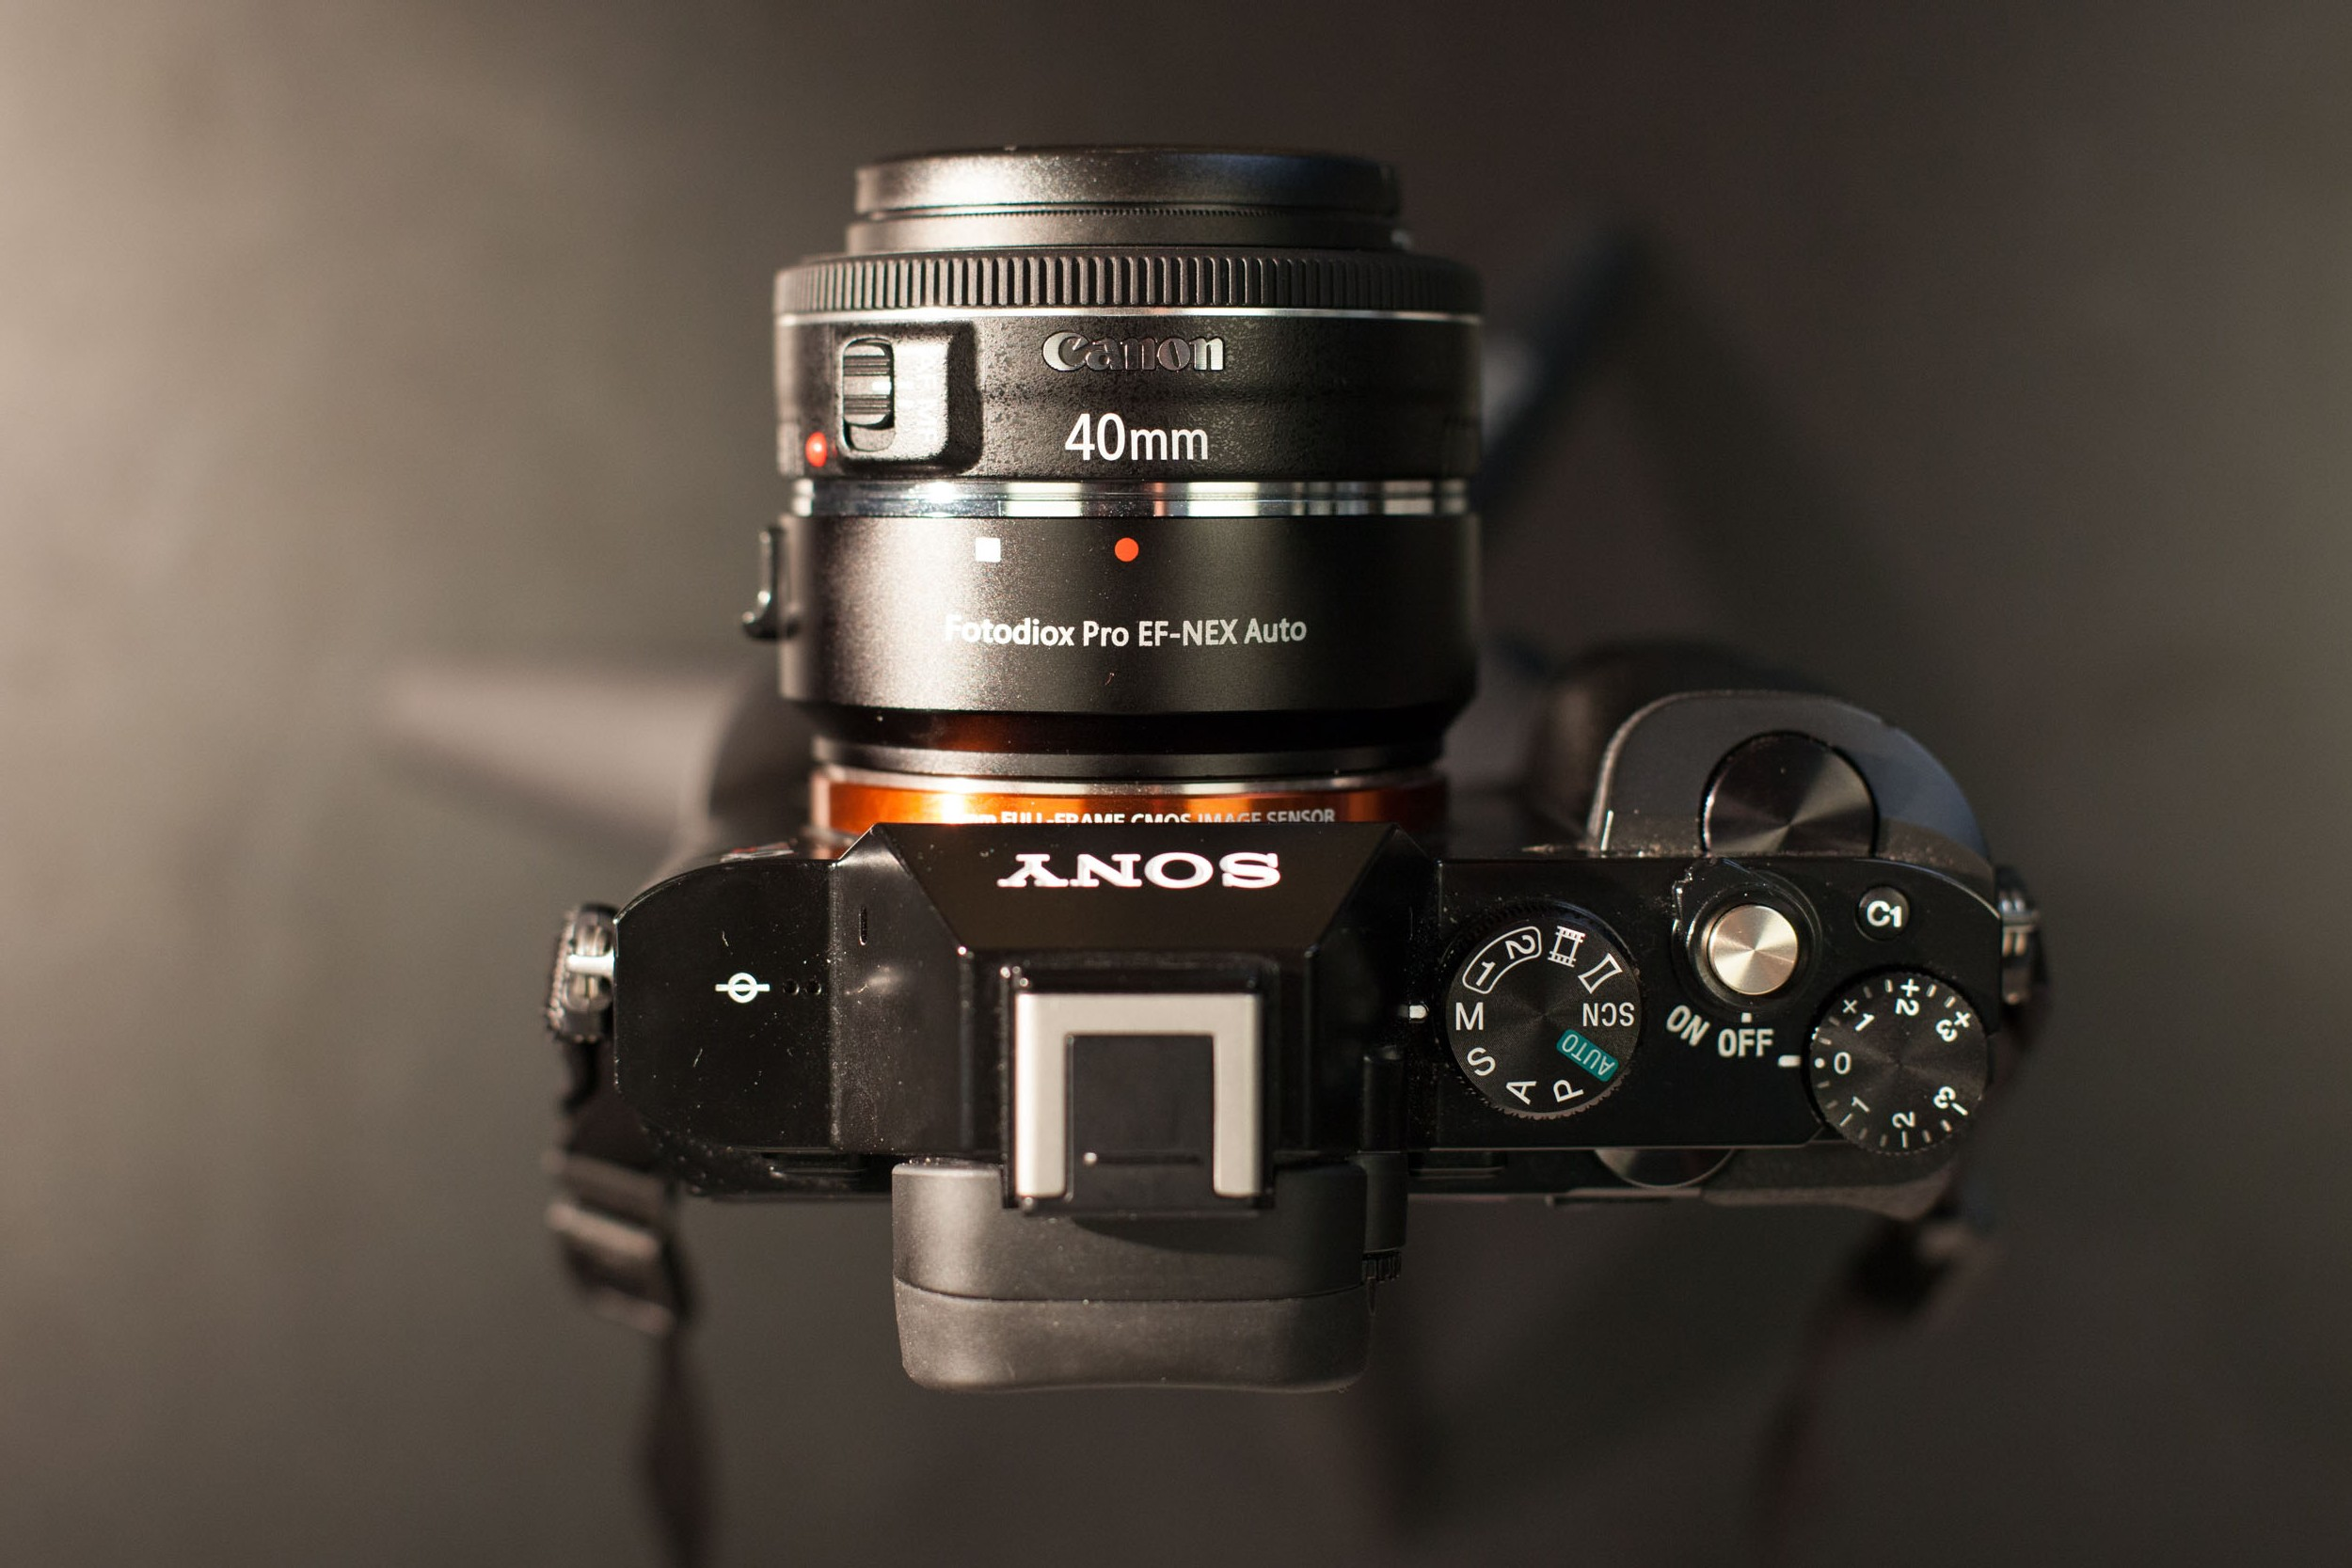 Using the Canon 40mm Pancake Lens with a Sony A7